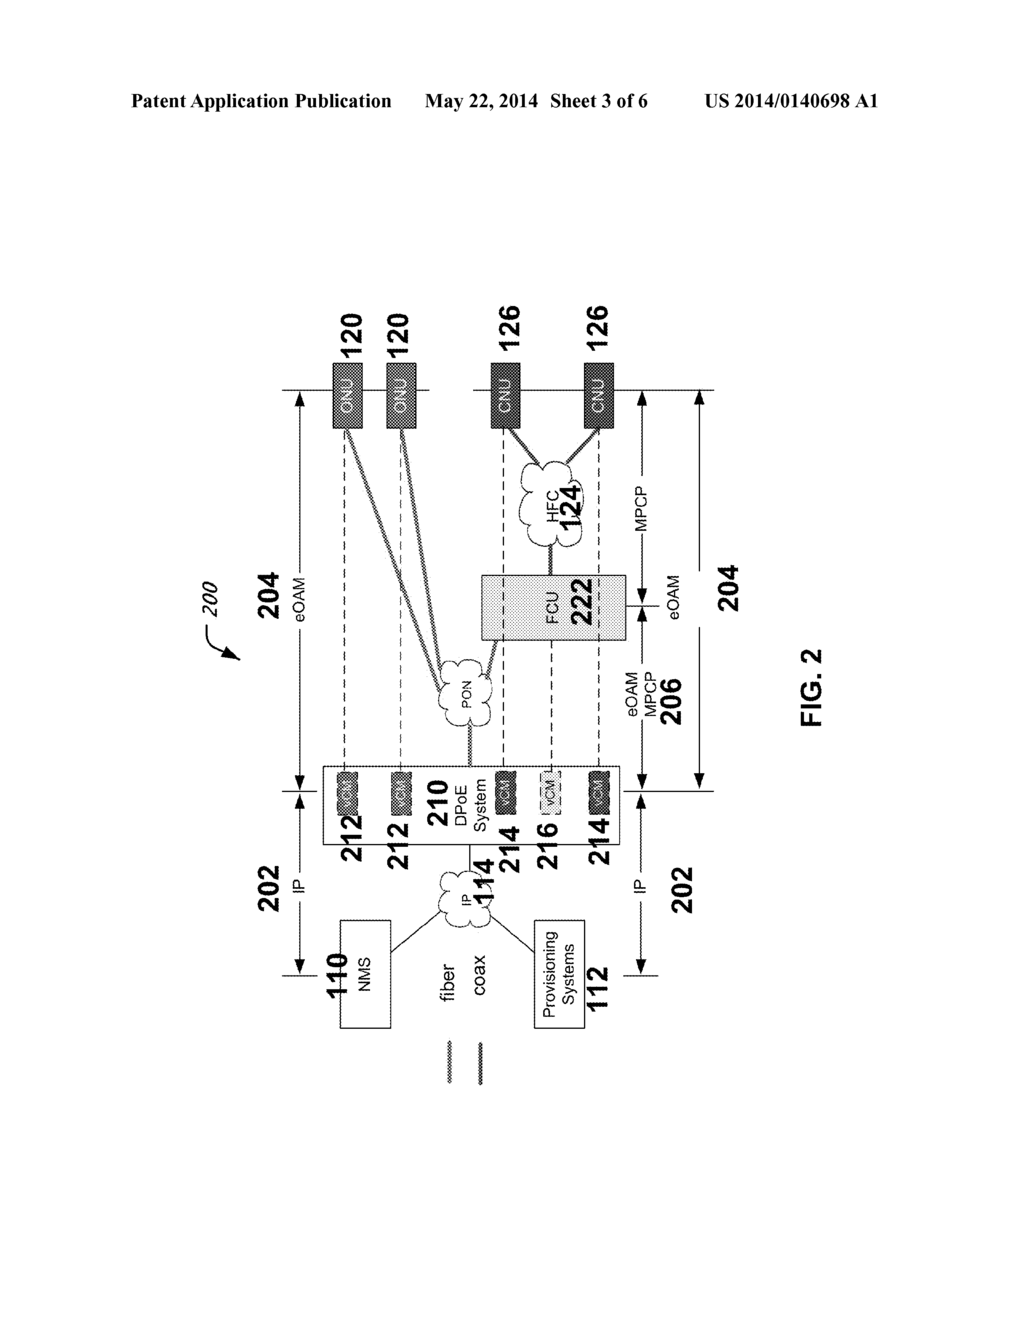 hight resolution of fiber coax unit fcu architecture for ethernet passive optical network epon protocol over coax epoc diagram schematic and image 04